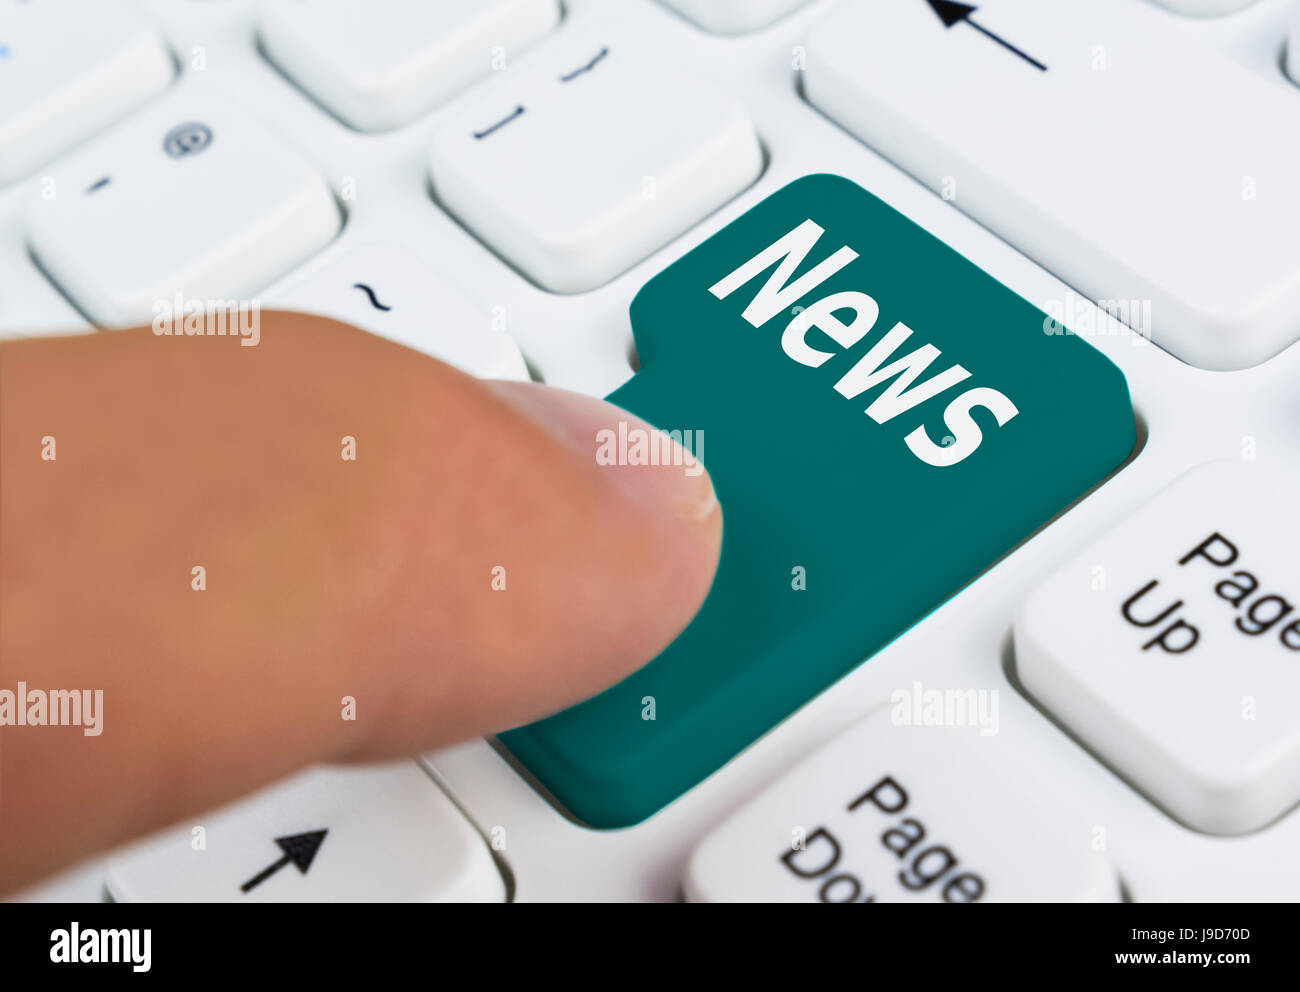 News concept. Pressing a news button on a computer keyboard. - Stock Image